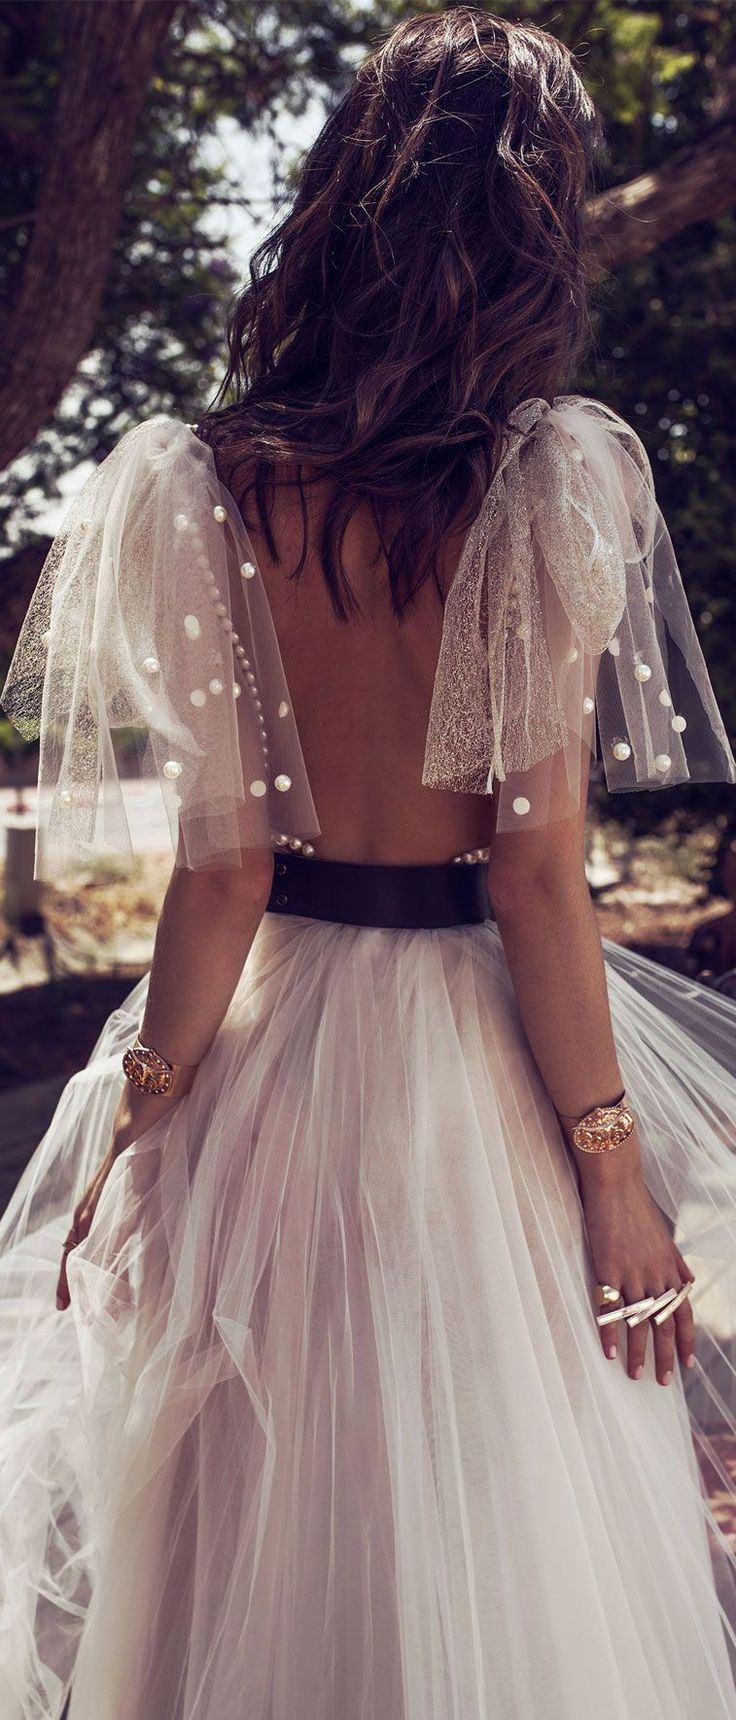 Short sleeves open back a line wedding gown #wedding #wedding #weddingdress #weddinggown #weddinggowns